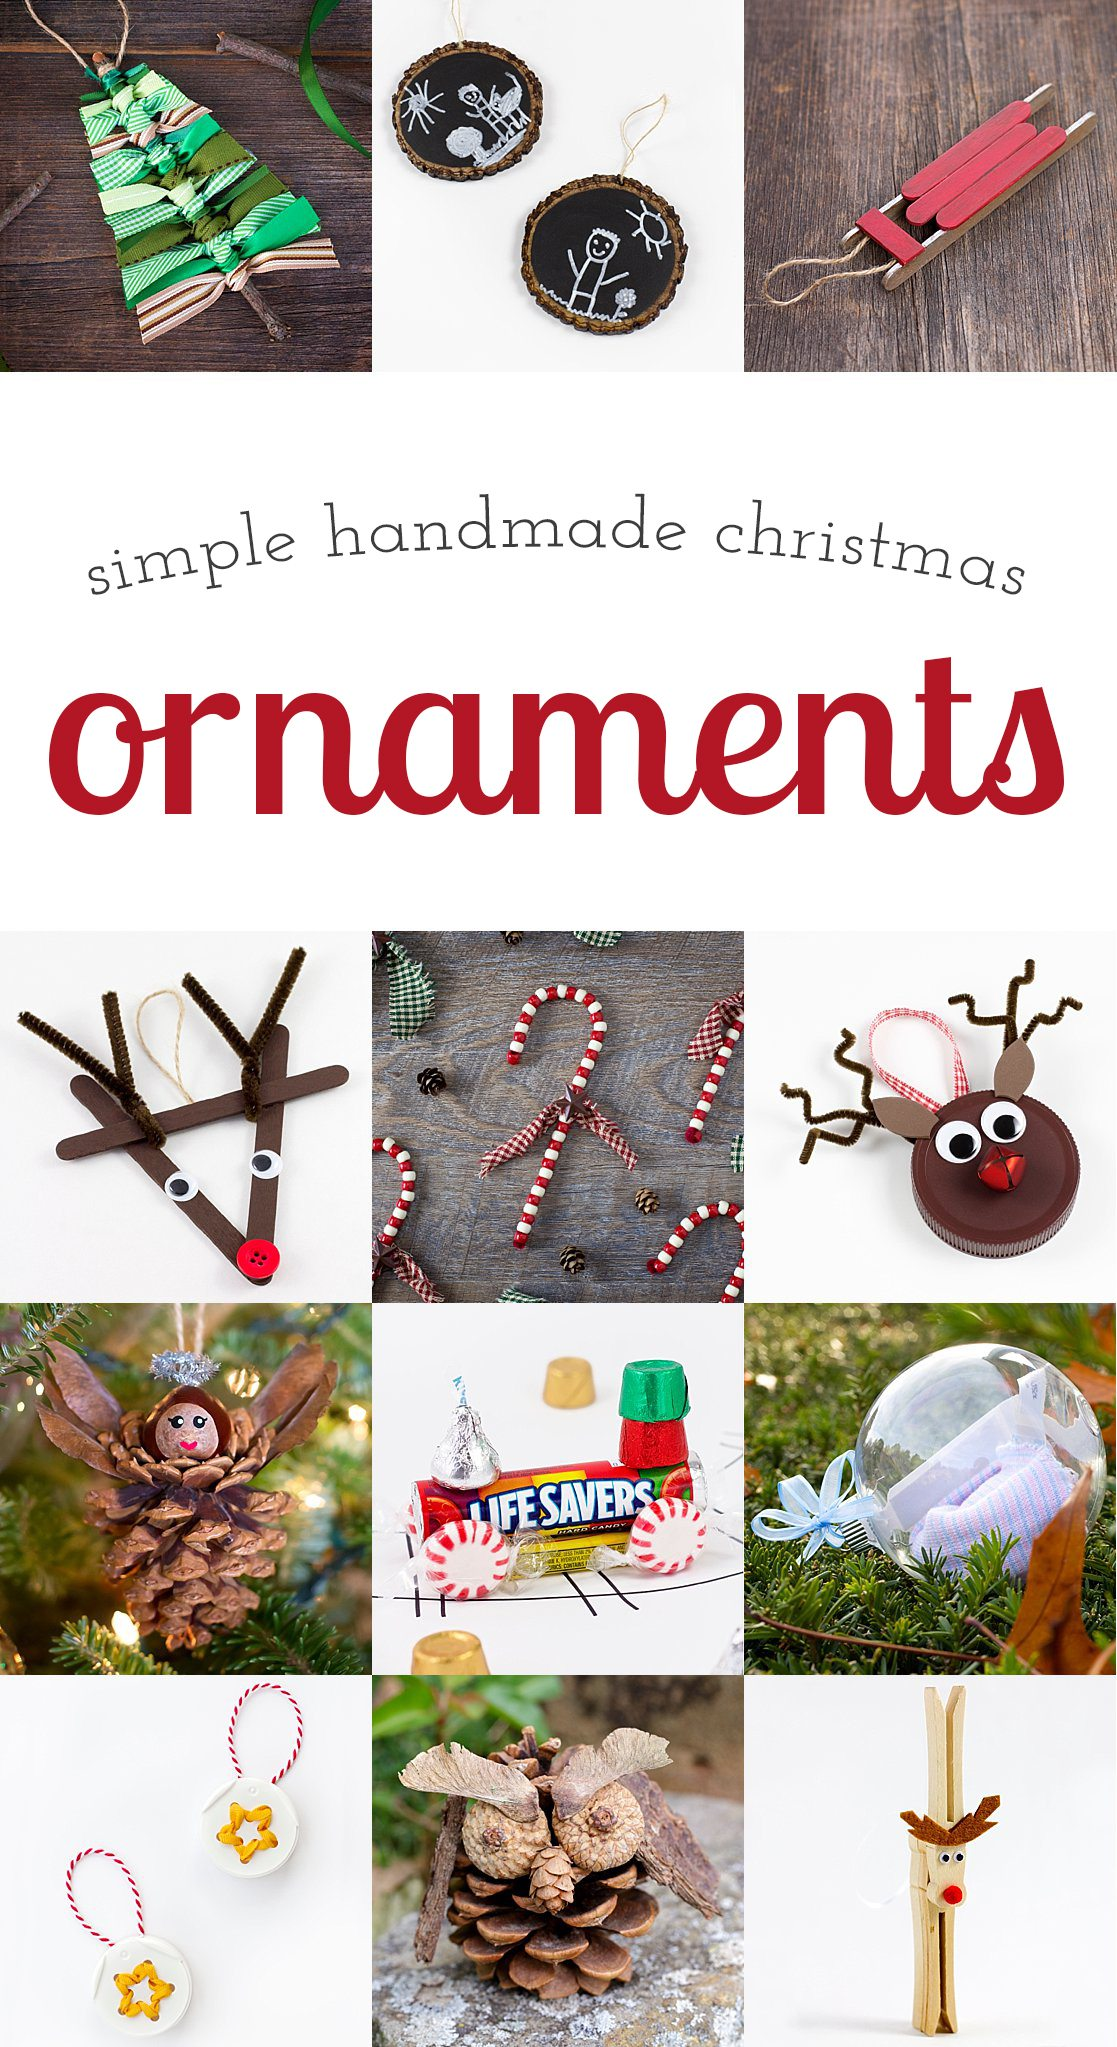 A collection of simple handmade ornaments that are popular with crafters of all ages. A thoughtful, colorful addition to any Christmas tree!